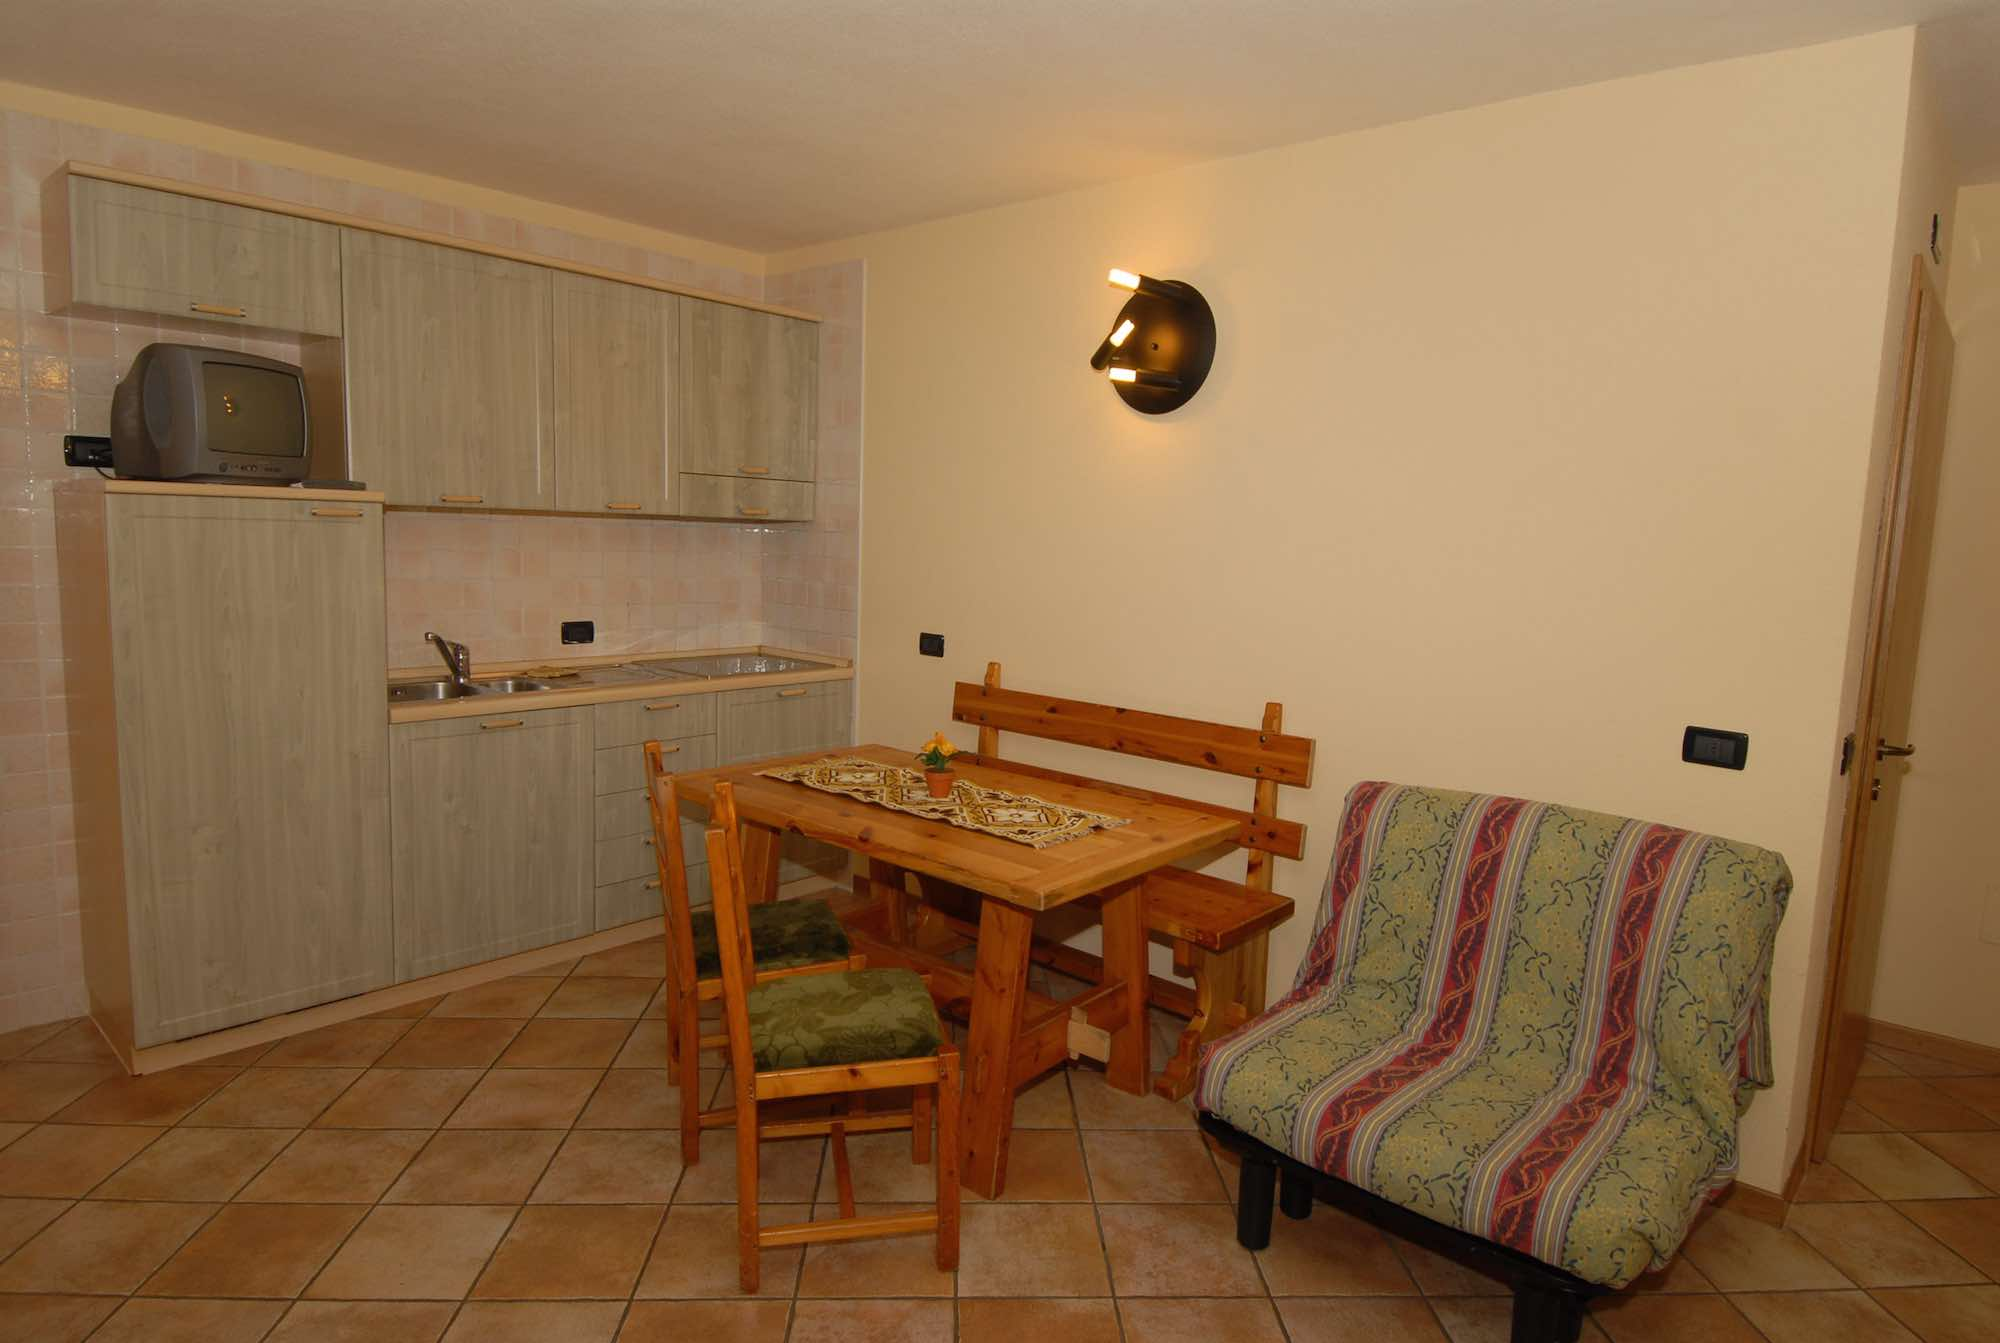 Baita Guana - Via Borch N.800, Livigno 23041 - Apartment - Taverna X2a 1